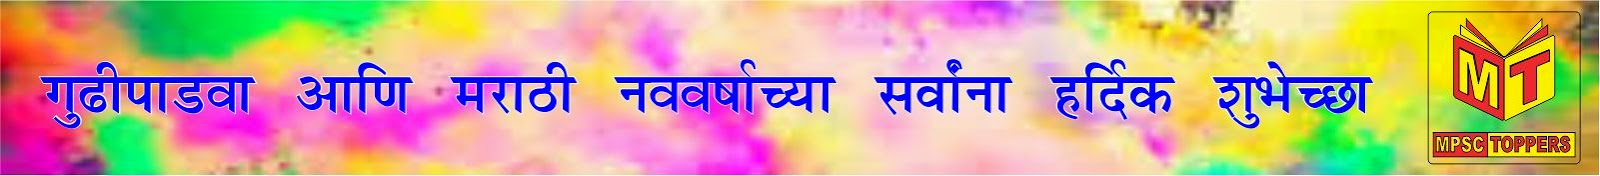 GudiPadva Marathi New Year